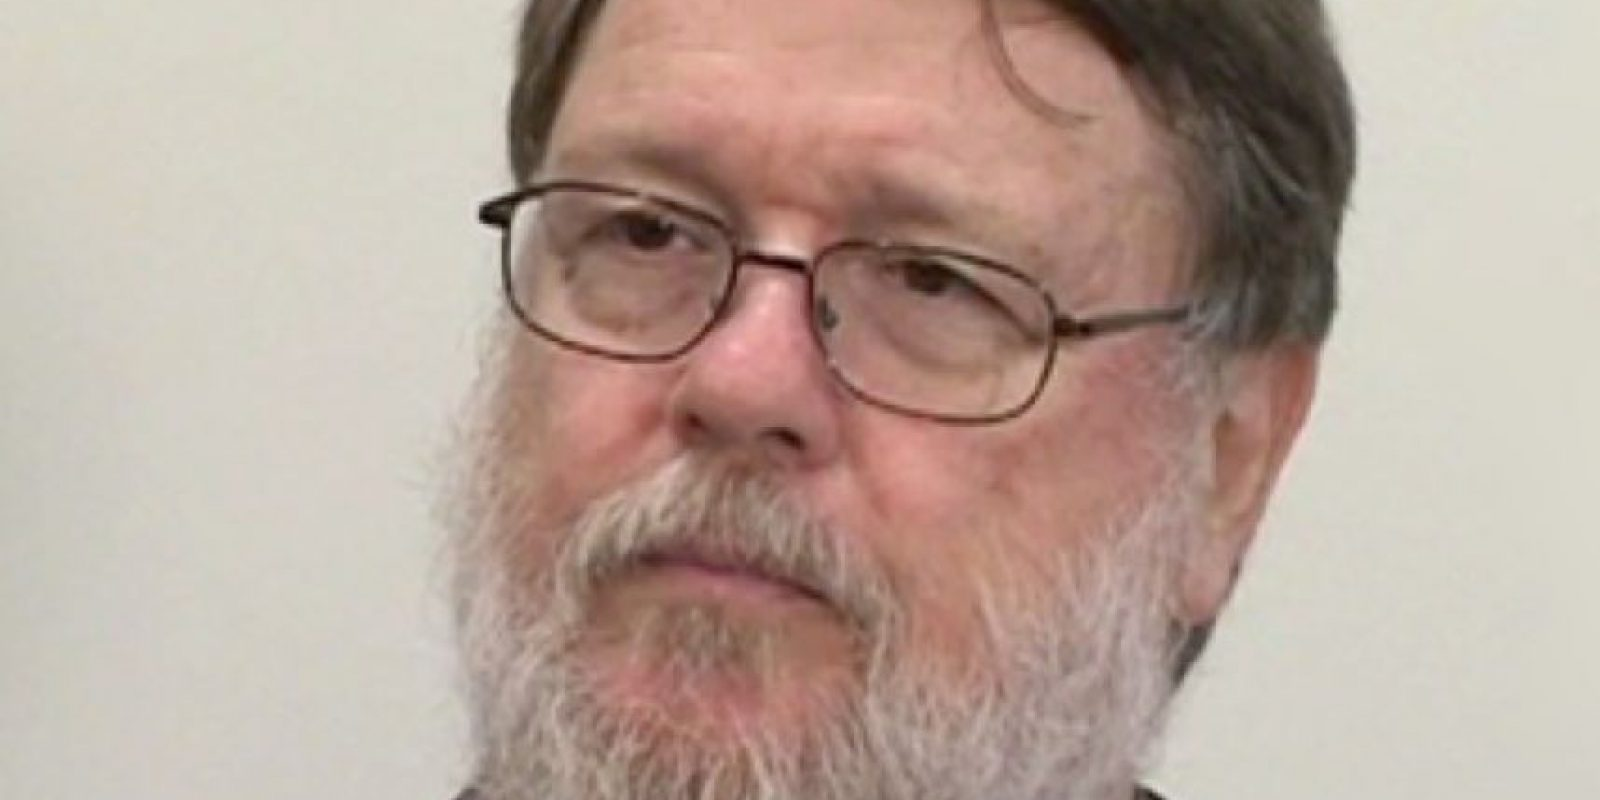 ¿Quien es Ray Tomlinson? Foto: Wikicommons